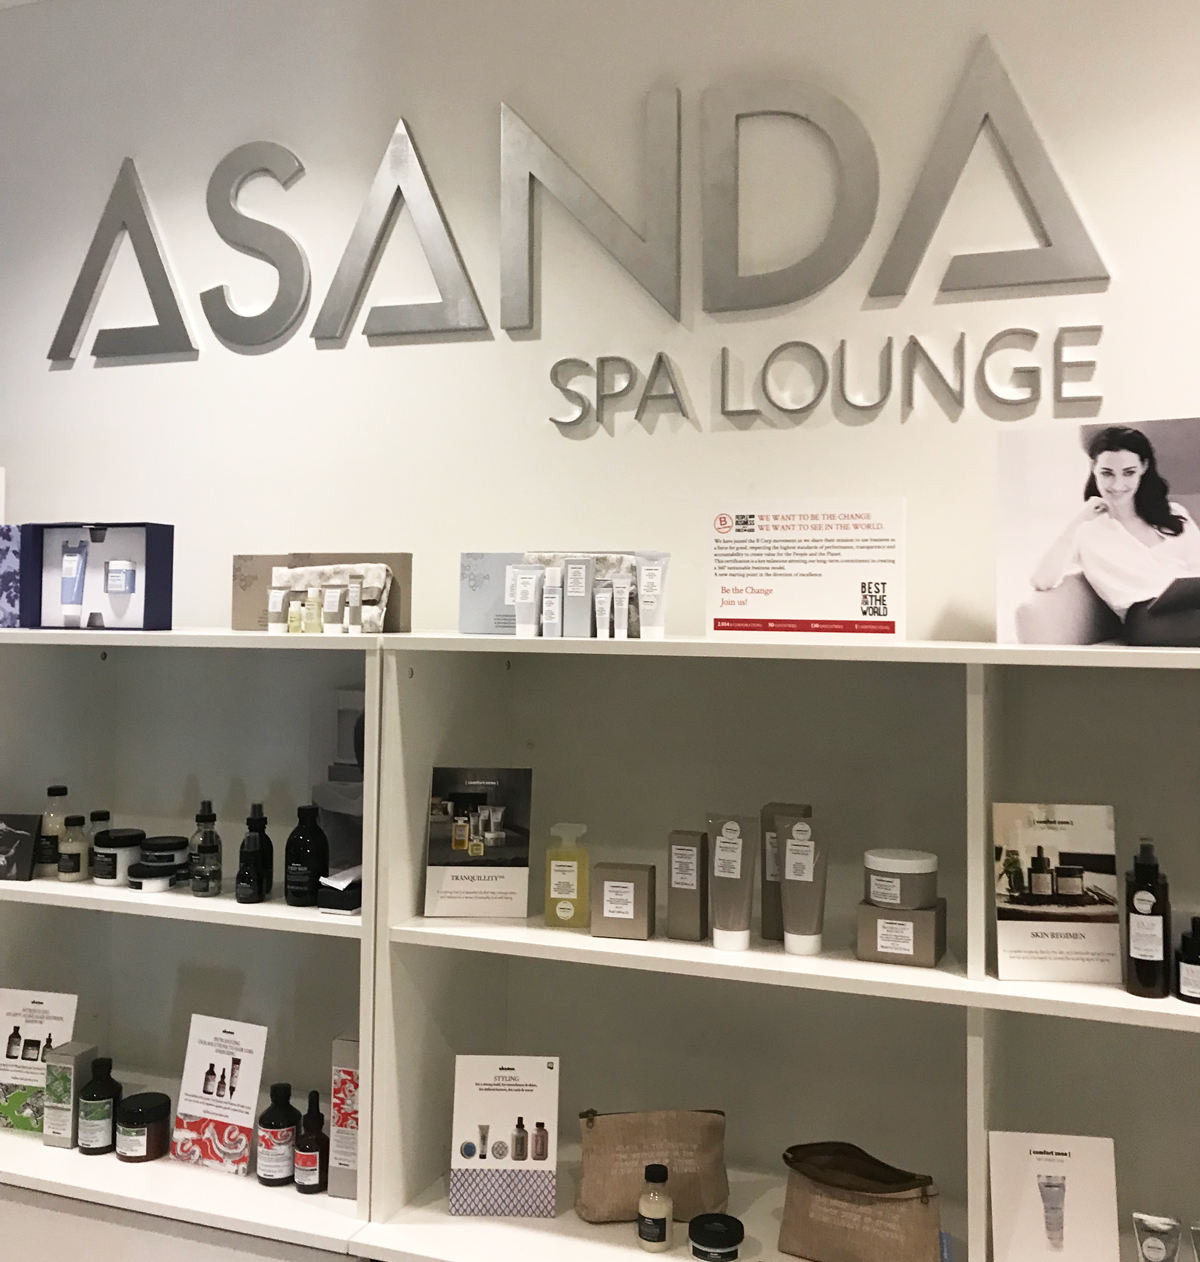 Asanda Spa Lounge Delta Sky Club Atlanta